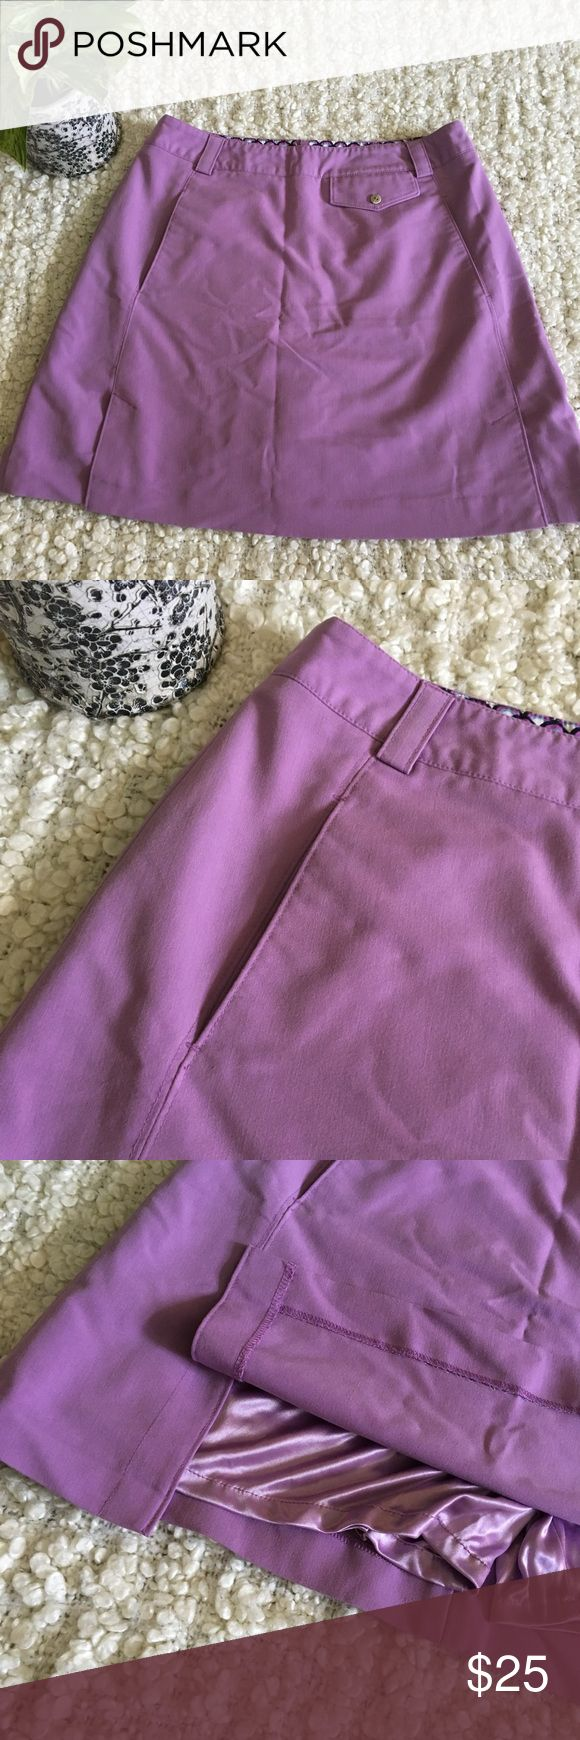 Sport Haley • Purple golf skort with pockets Cute purple skort (this brand is commonly associated with golf skorts) with pockets and front side slits. Shorts underneath are silly and soft. Great for fitness use or casual. Nothing wrong with them item, selling it for a friend, and it just does not fit her anymore. Sport Haley Shorts Skorts